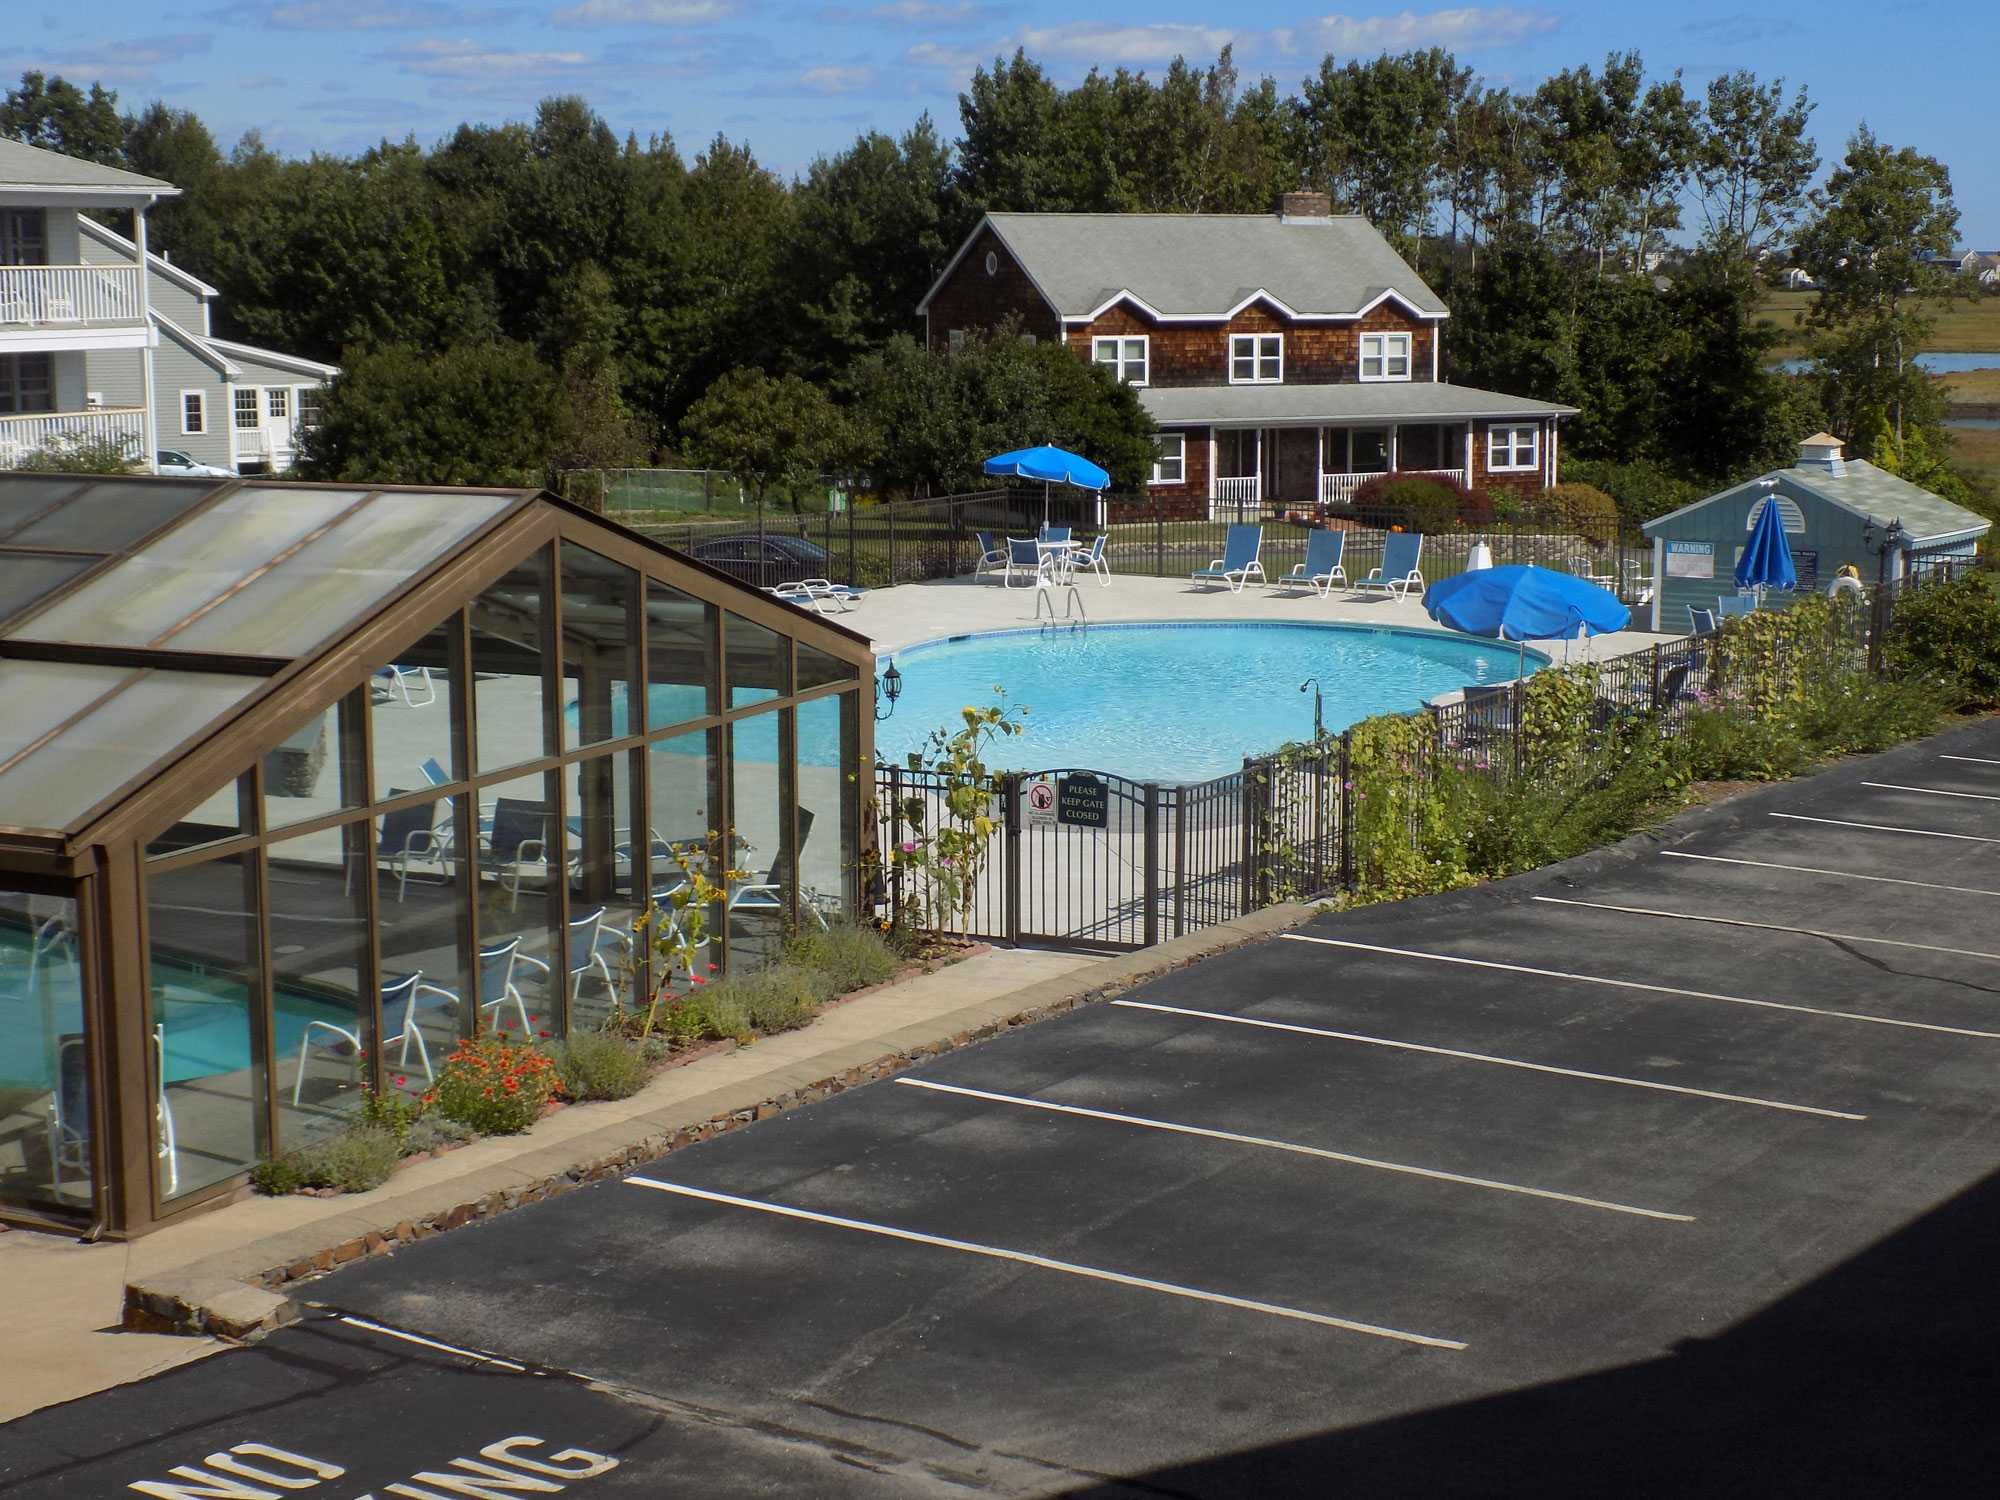 View of pool from motel balcony